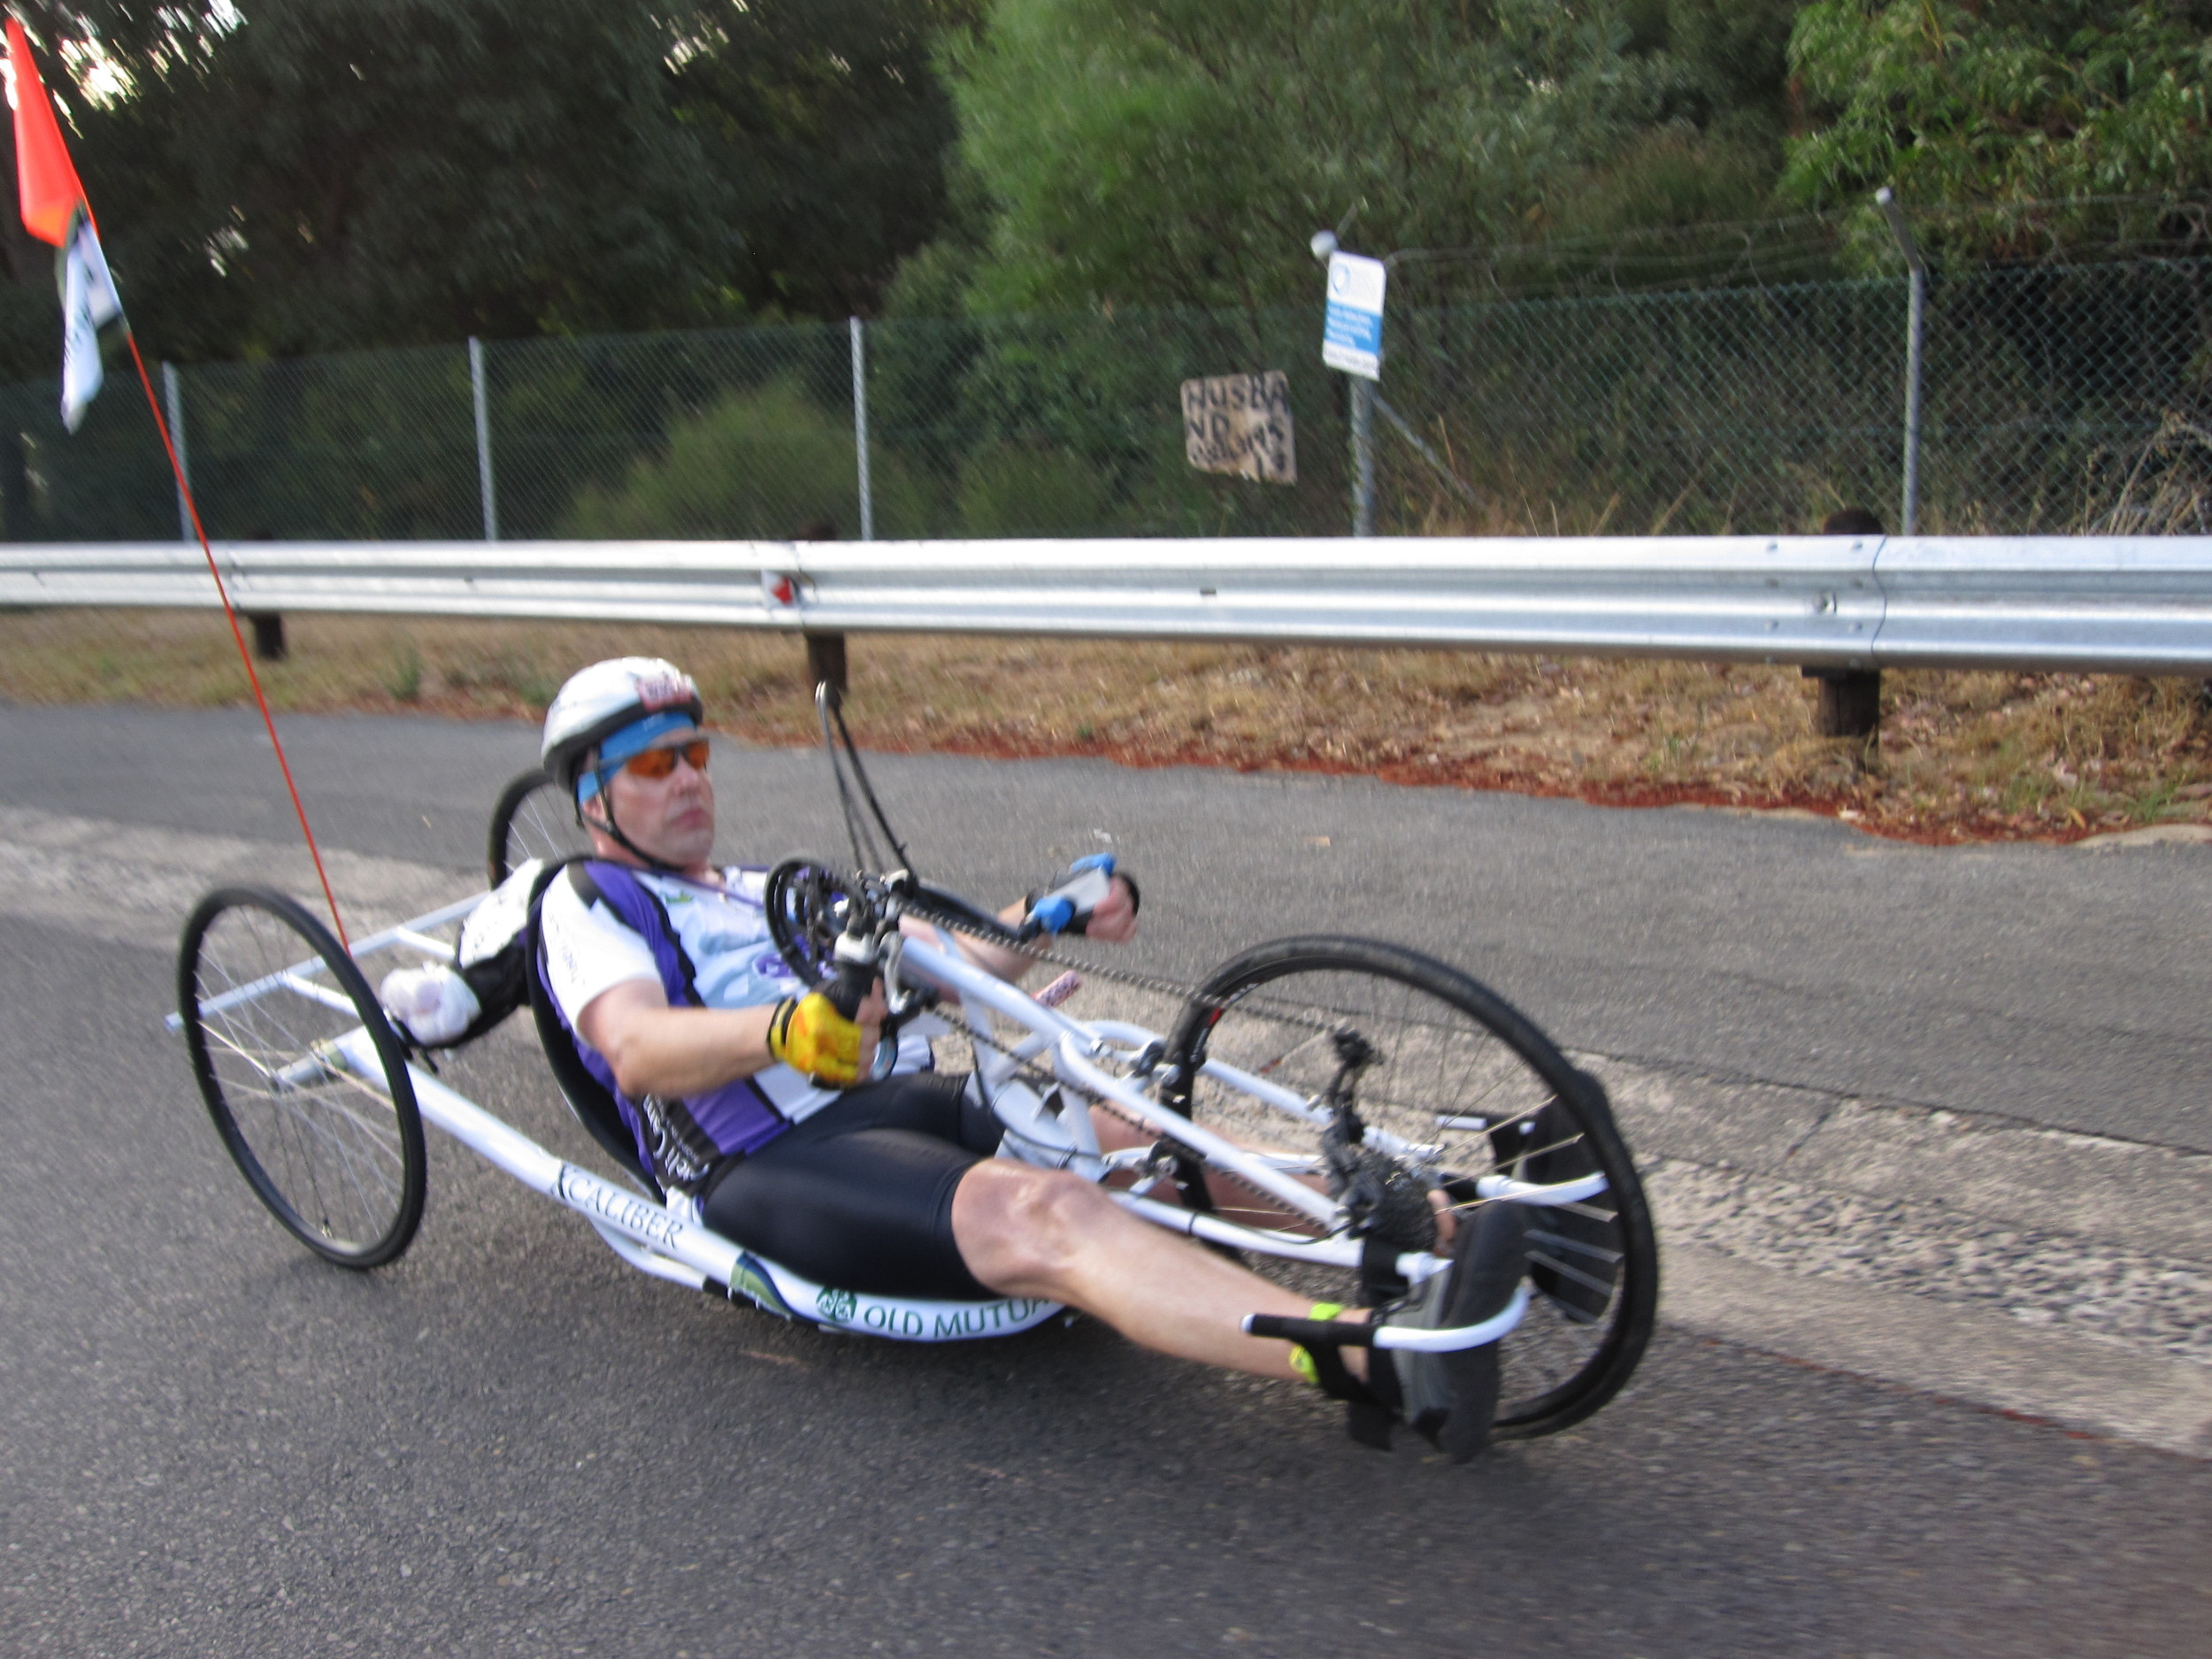 Recumbent bike riders pedal with their hands and arms.